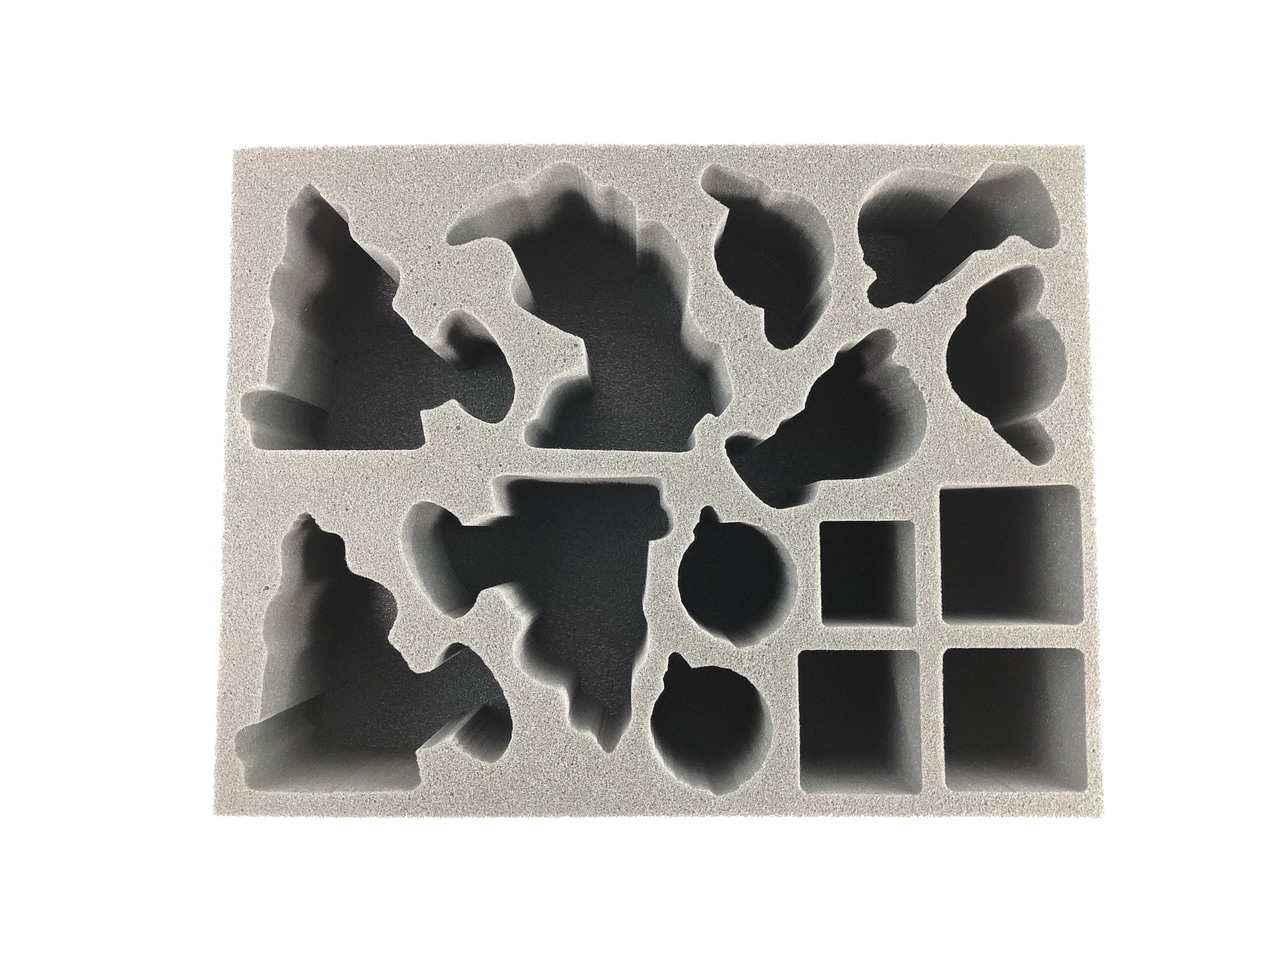 Battlefoam: Age Of Sigmar: Gloomspite Gitz Troggoth Foam Tray (BFL-4)